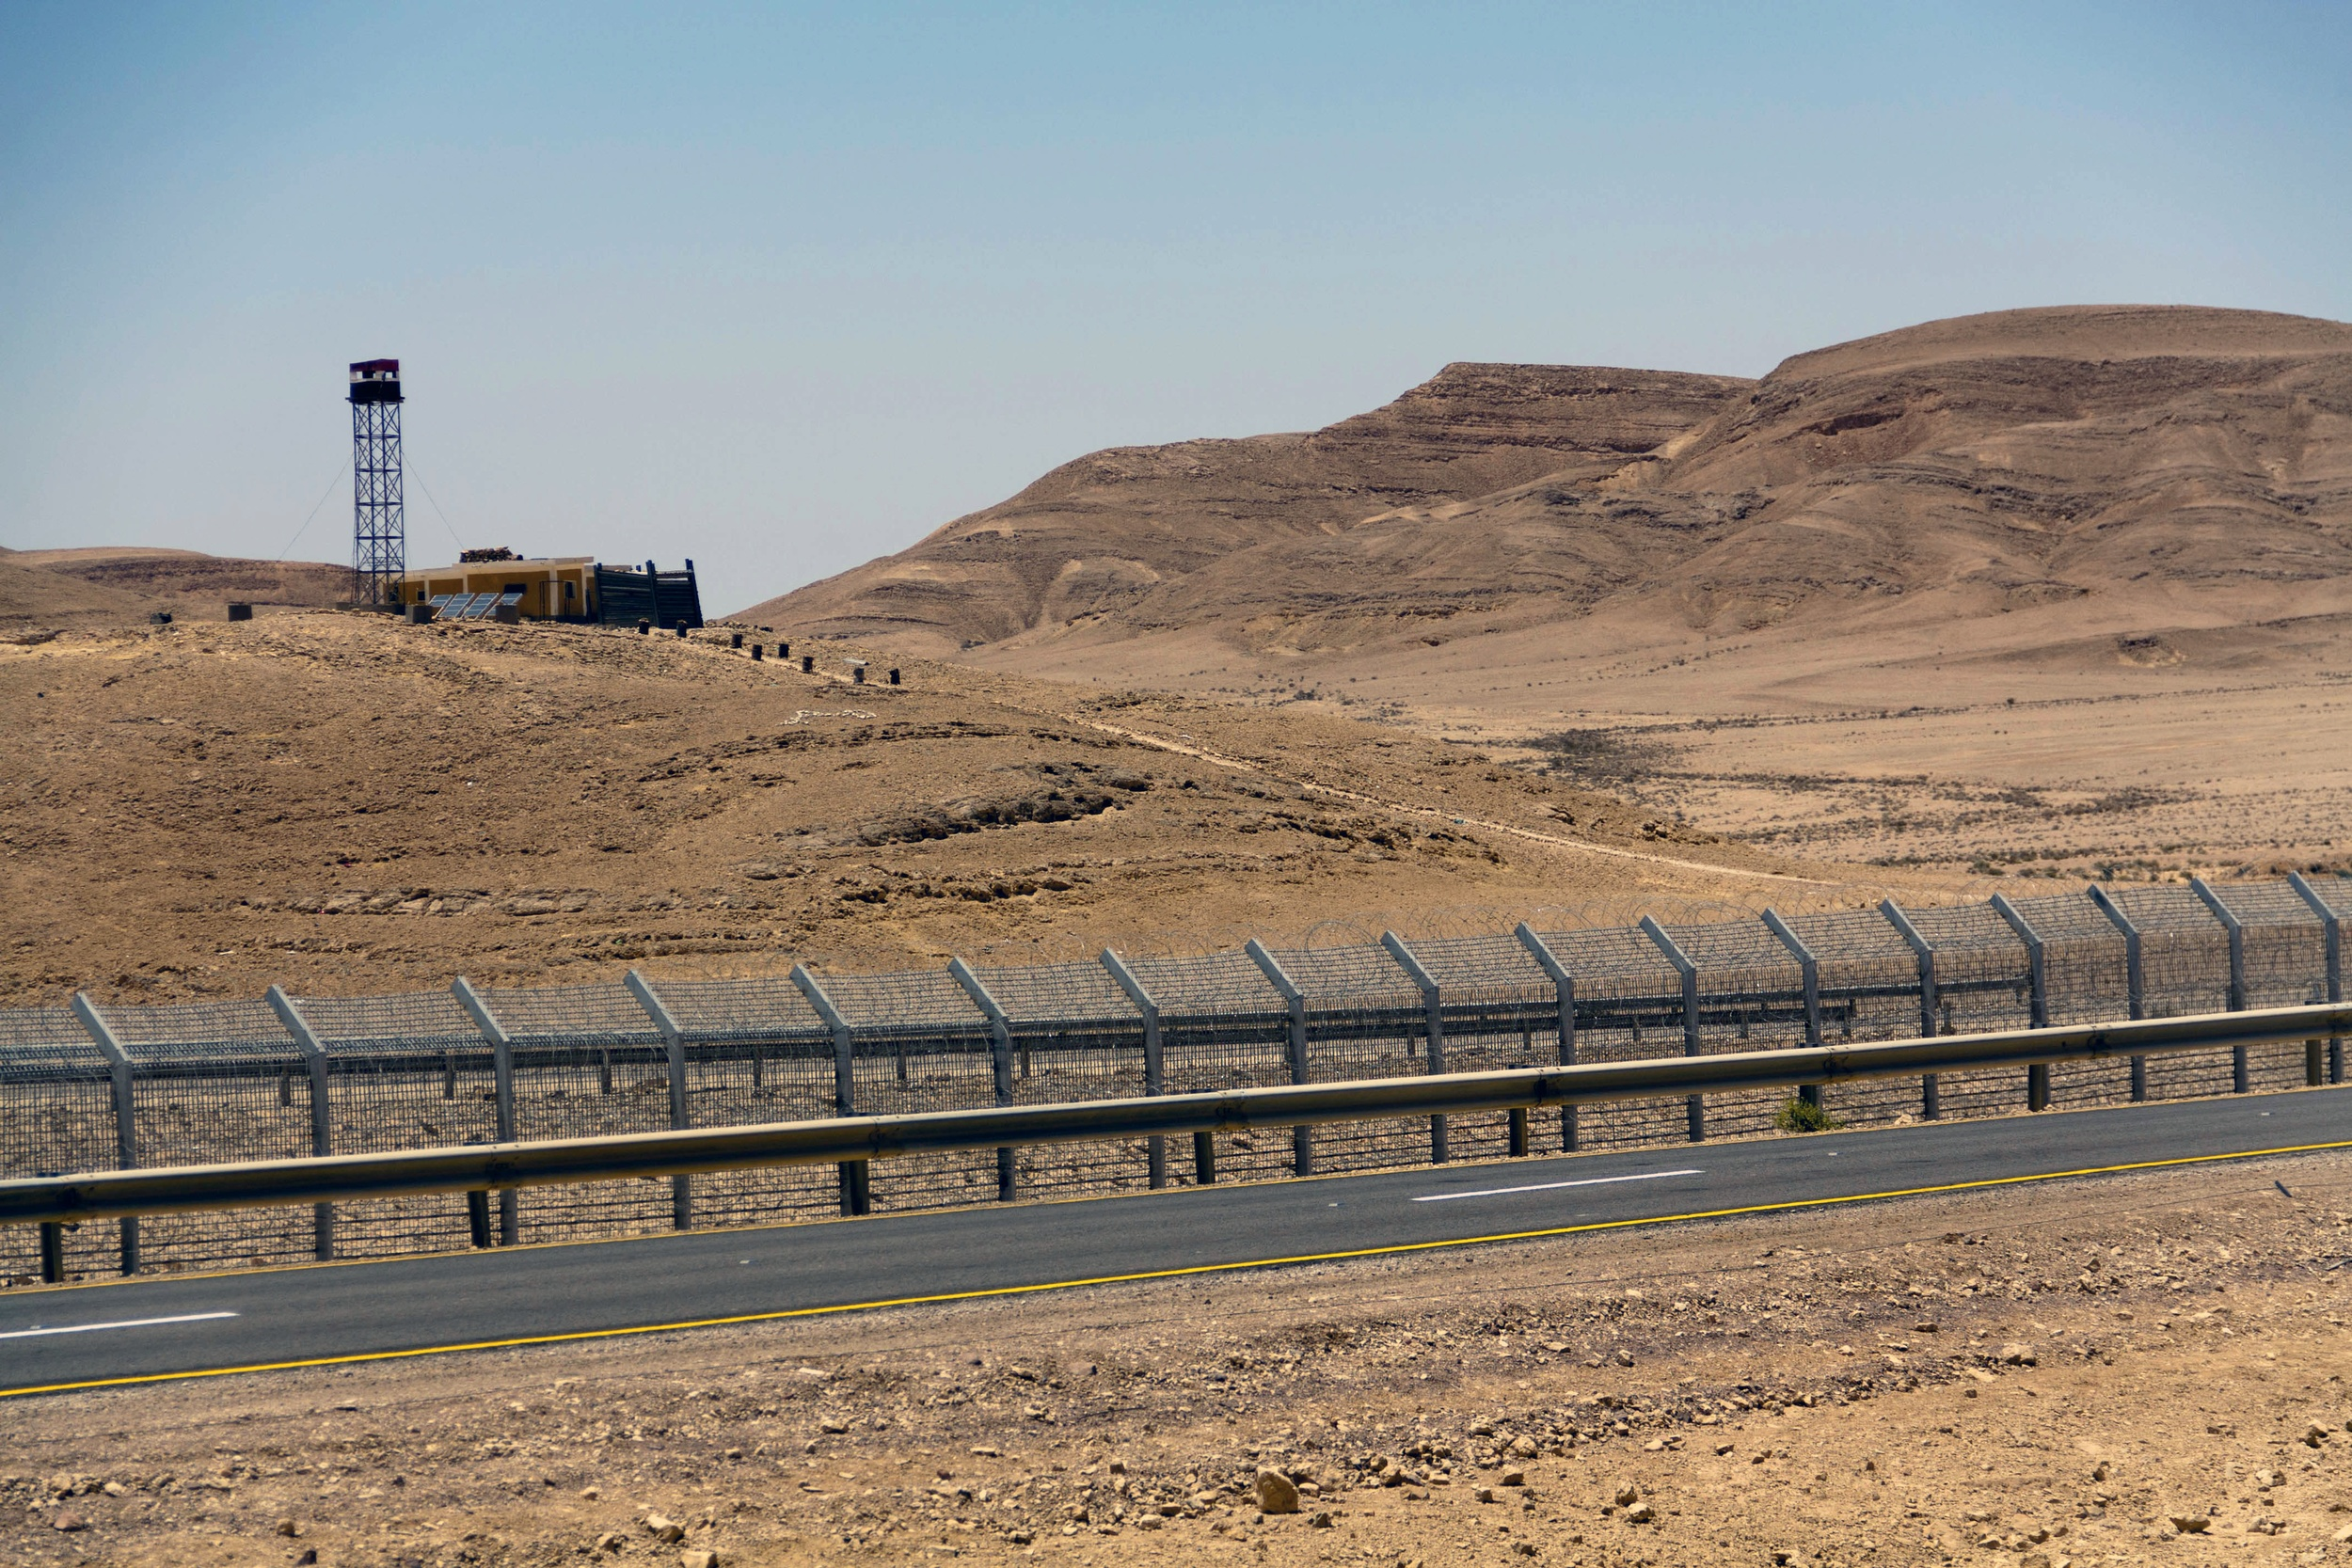 Click photo to download. The security fence along the Israel-Egypt border, built in 2012. Israel is monitoring the situation in the Sinai region amid turmoil in Egypt following president Mohamed Morsi's ouster. Credit: Idobi via Wikimedia Commons.